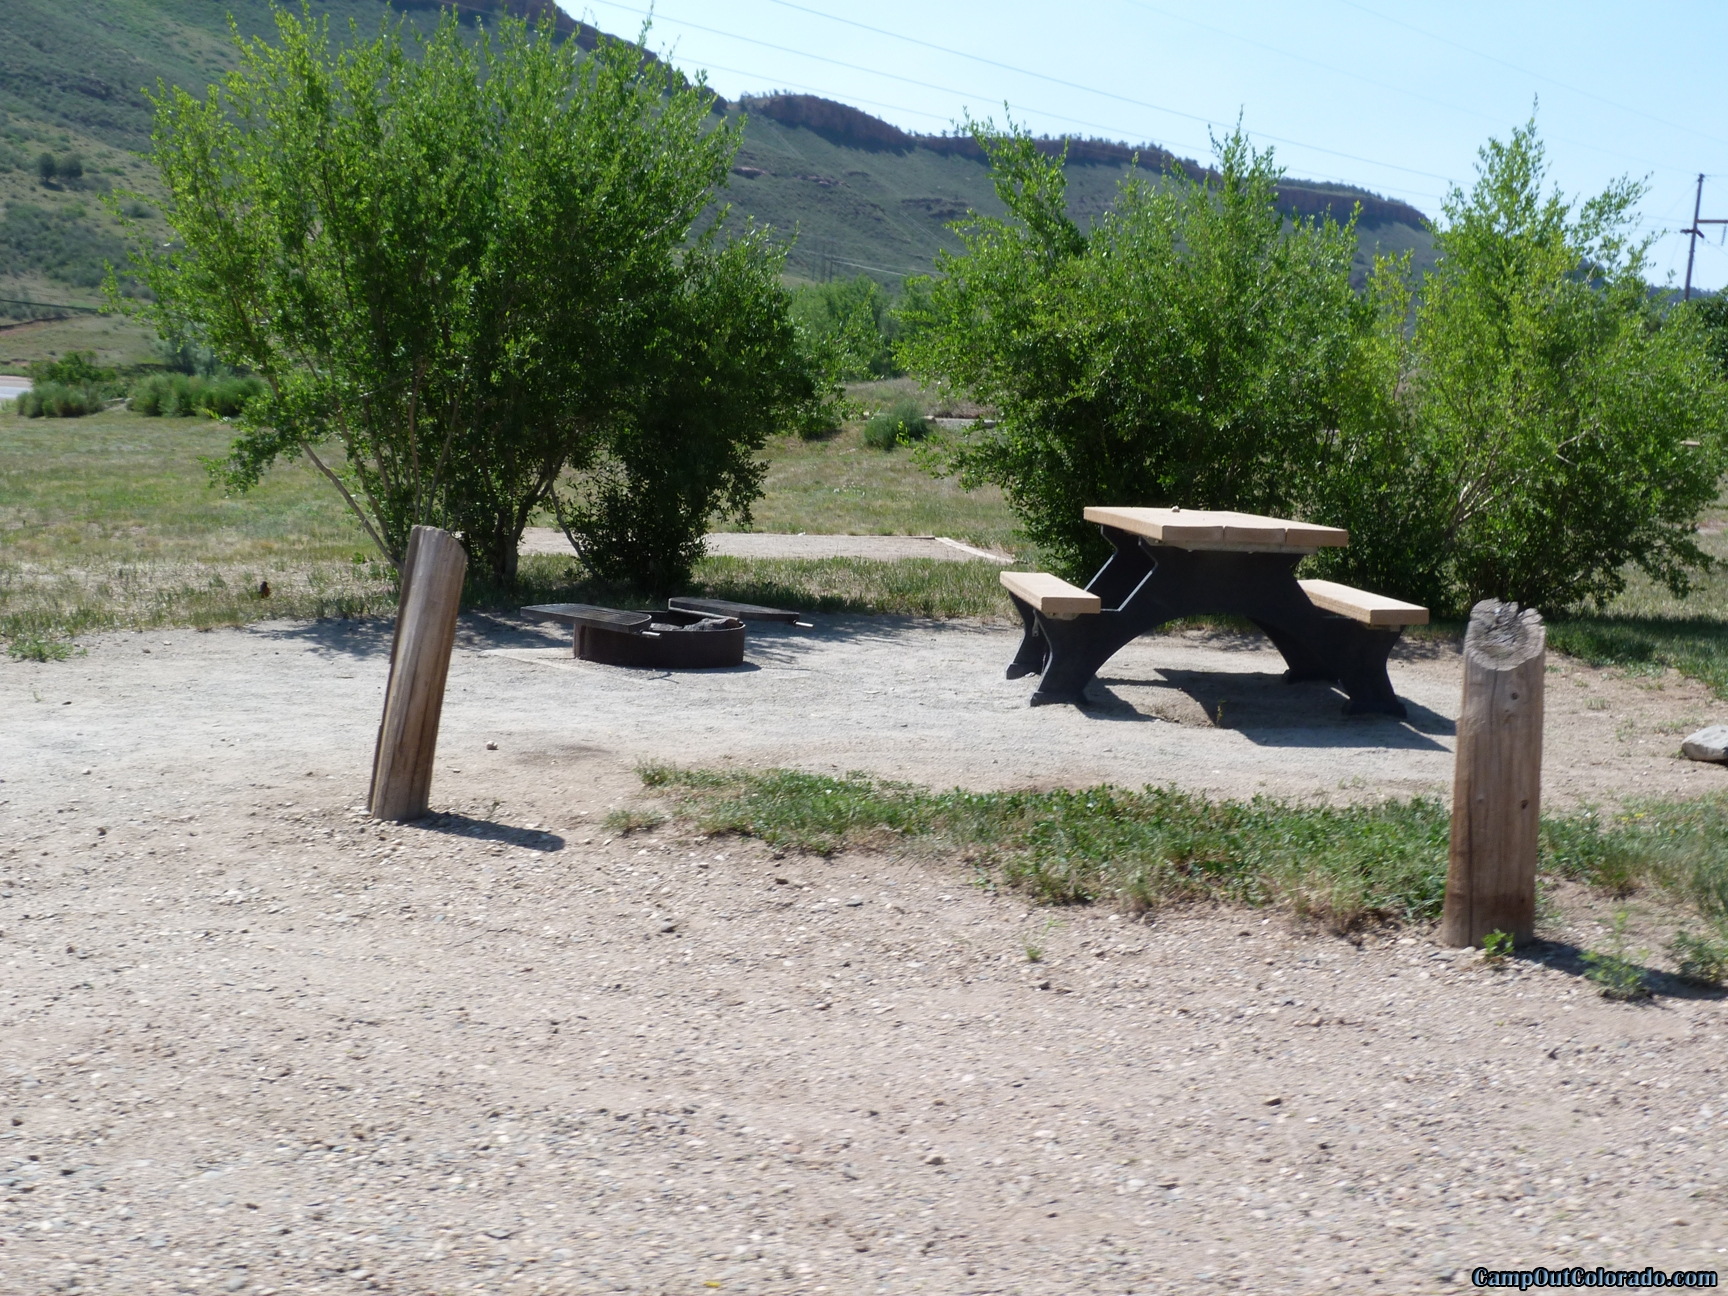 camp-out-colorado-flatirons-reservoir-small-campsite